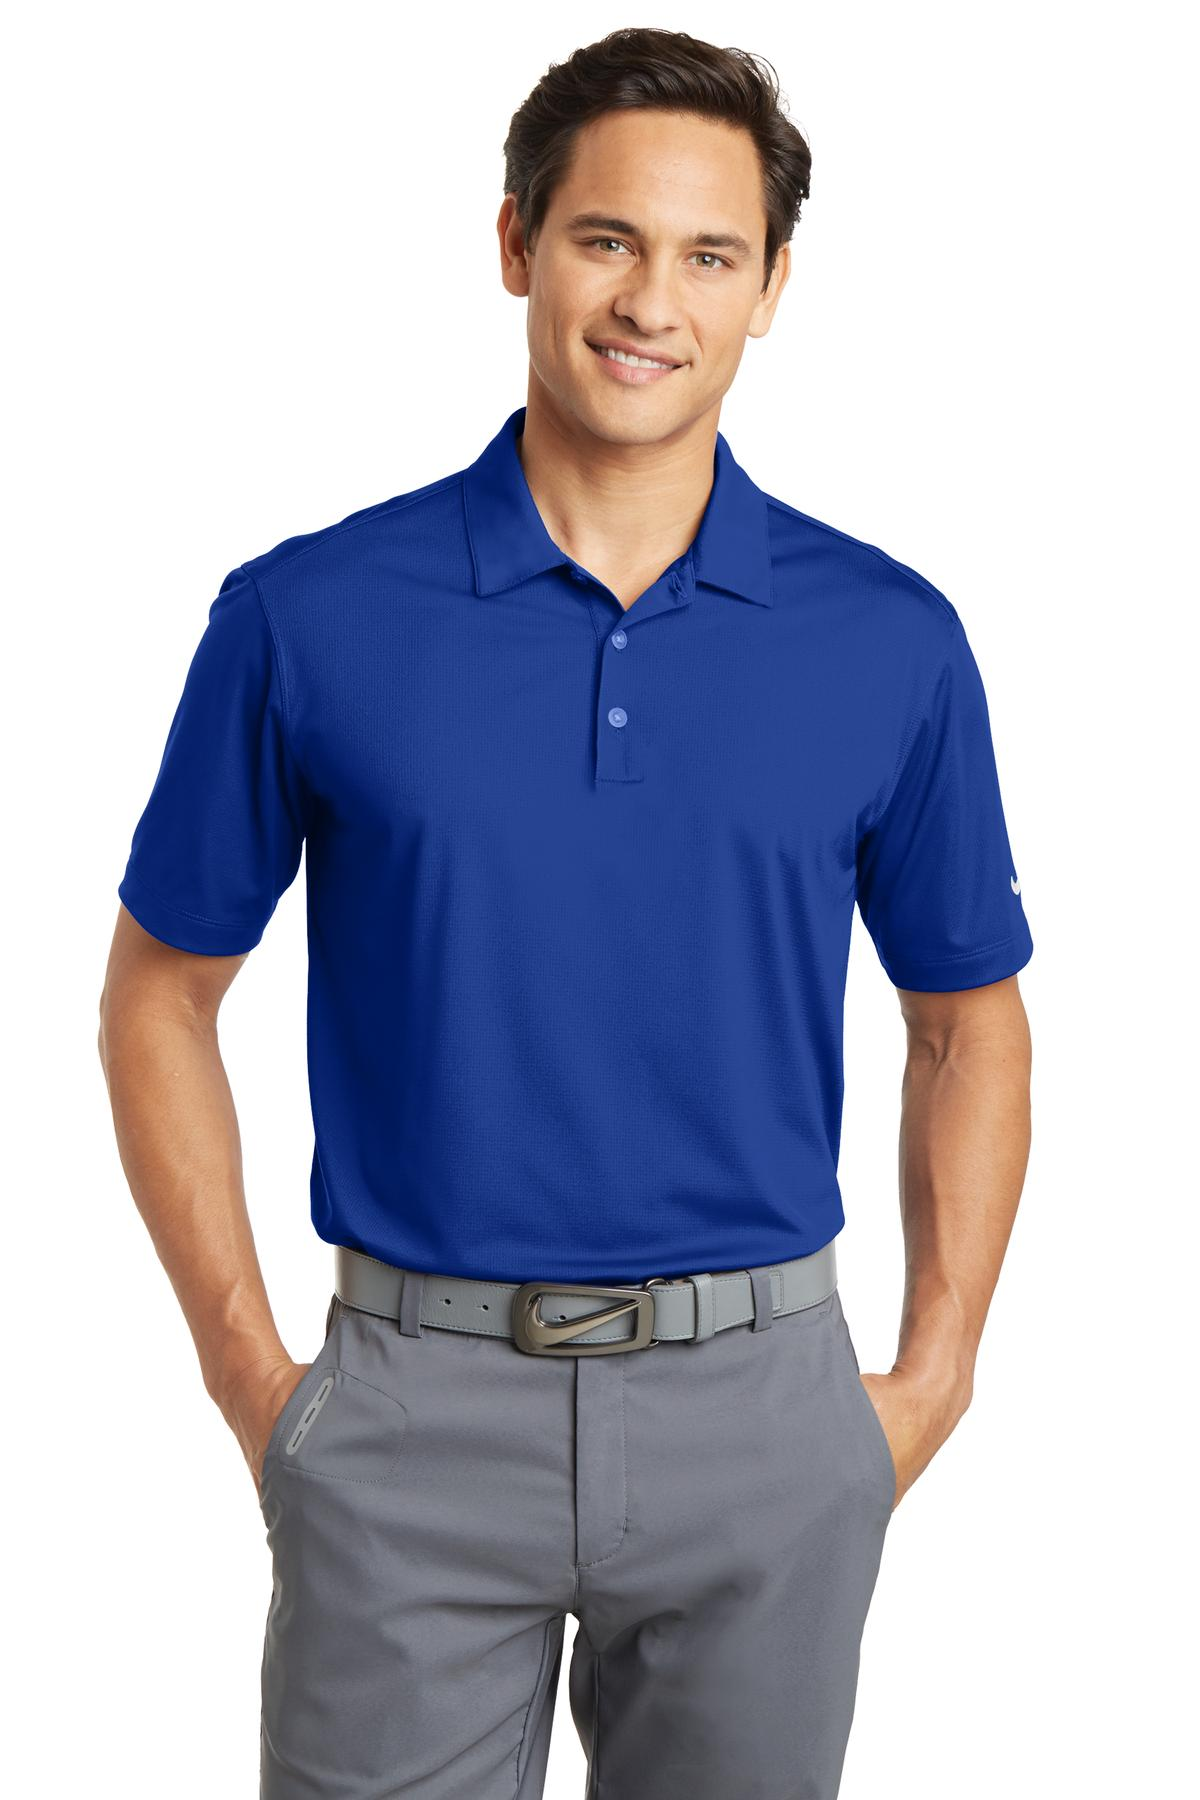 Nike Dri-FIT Vertical Mesh Polo. 637167 - Old Royal